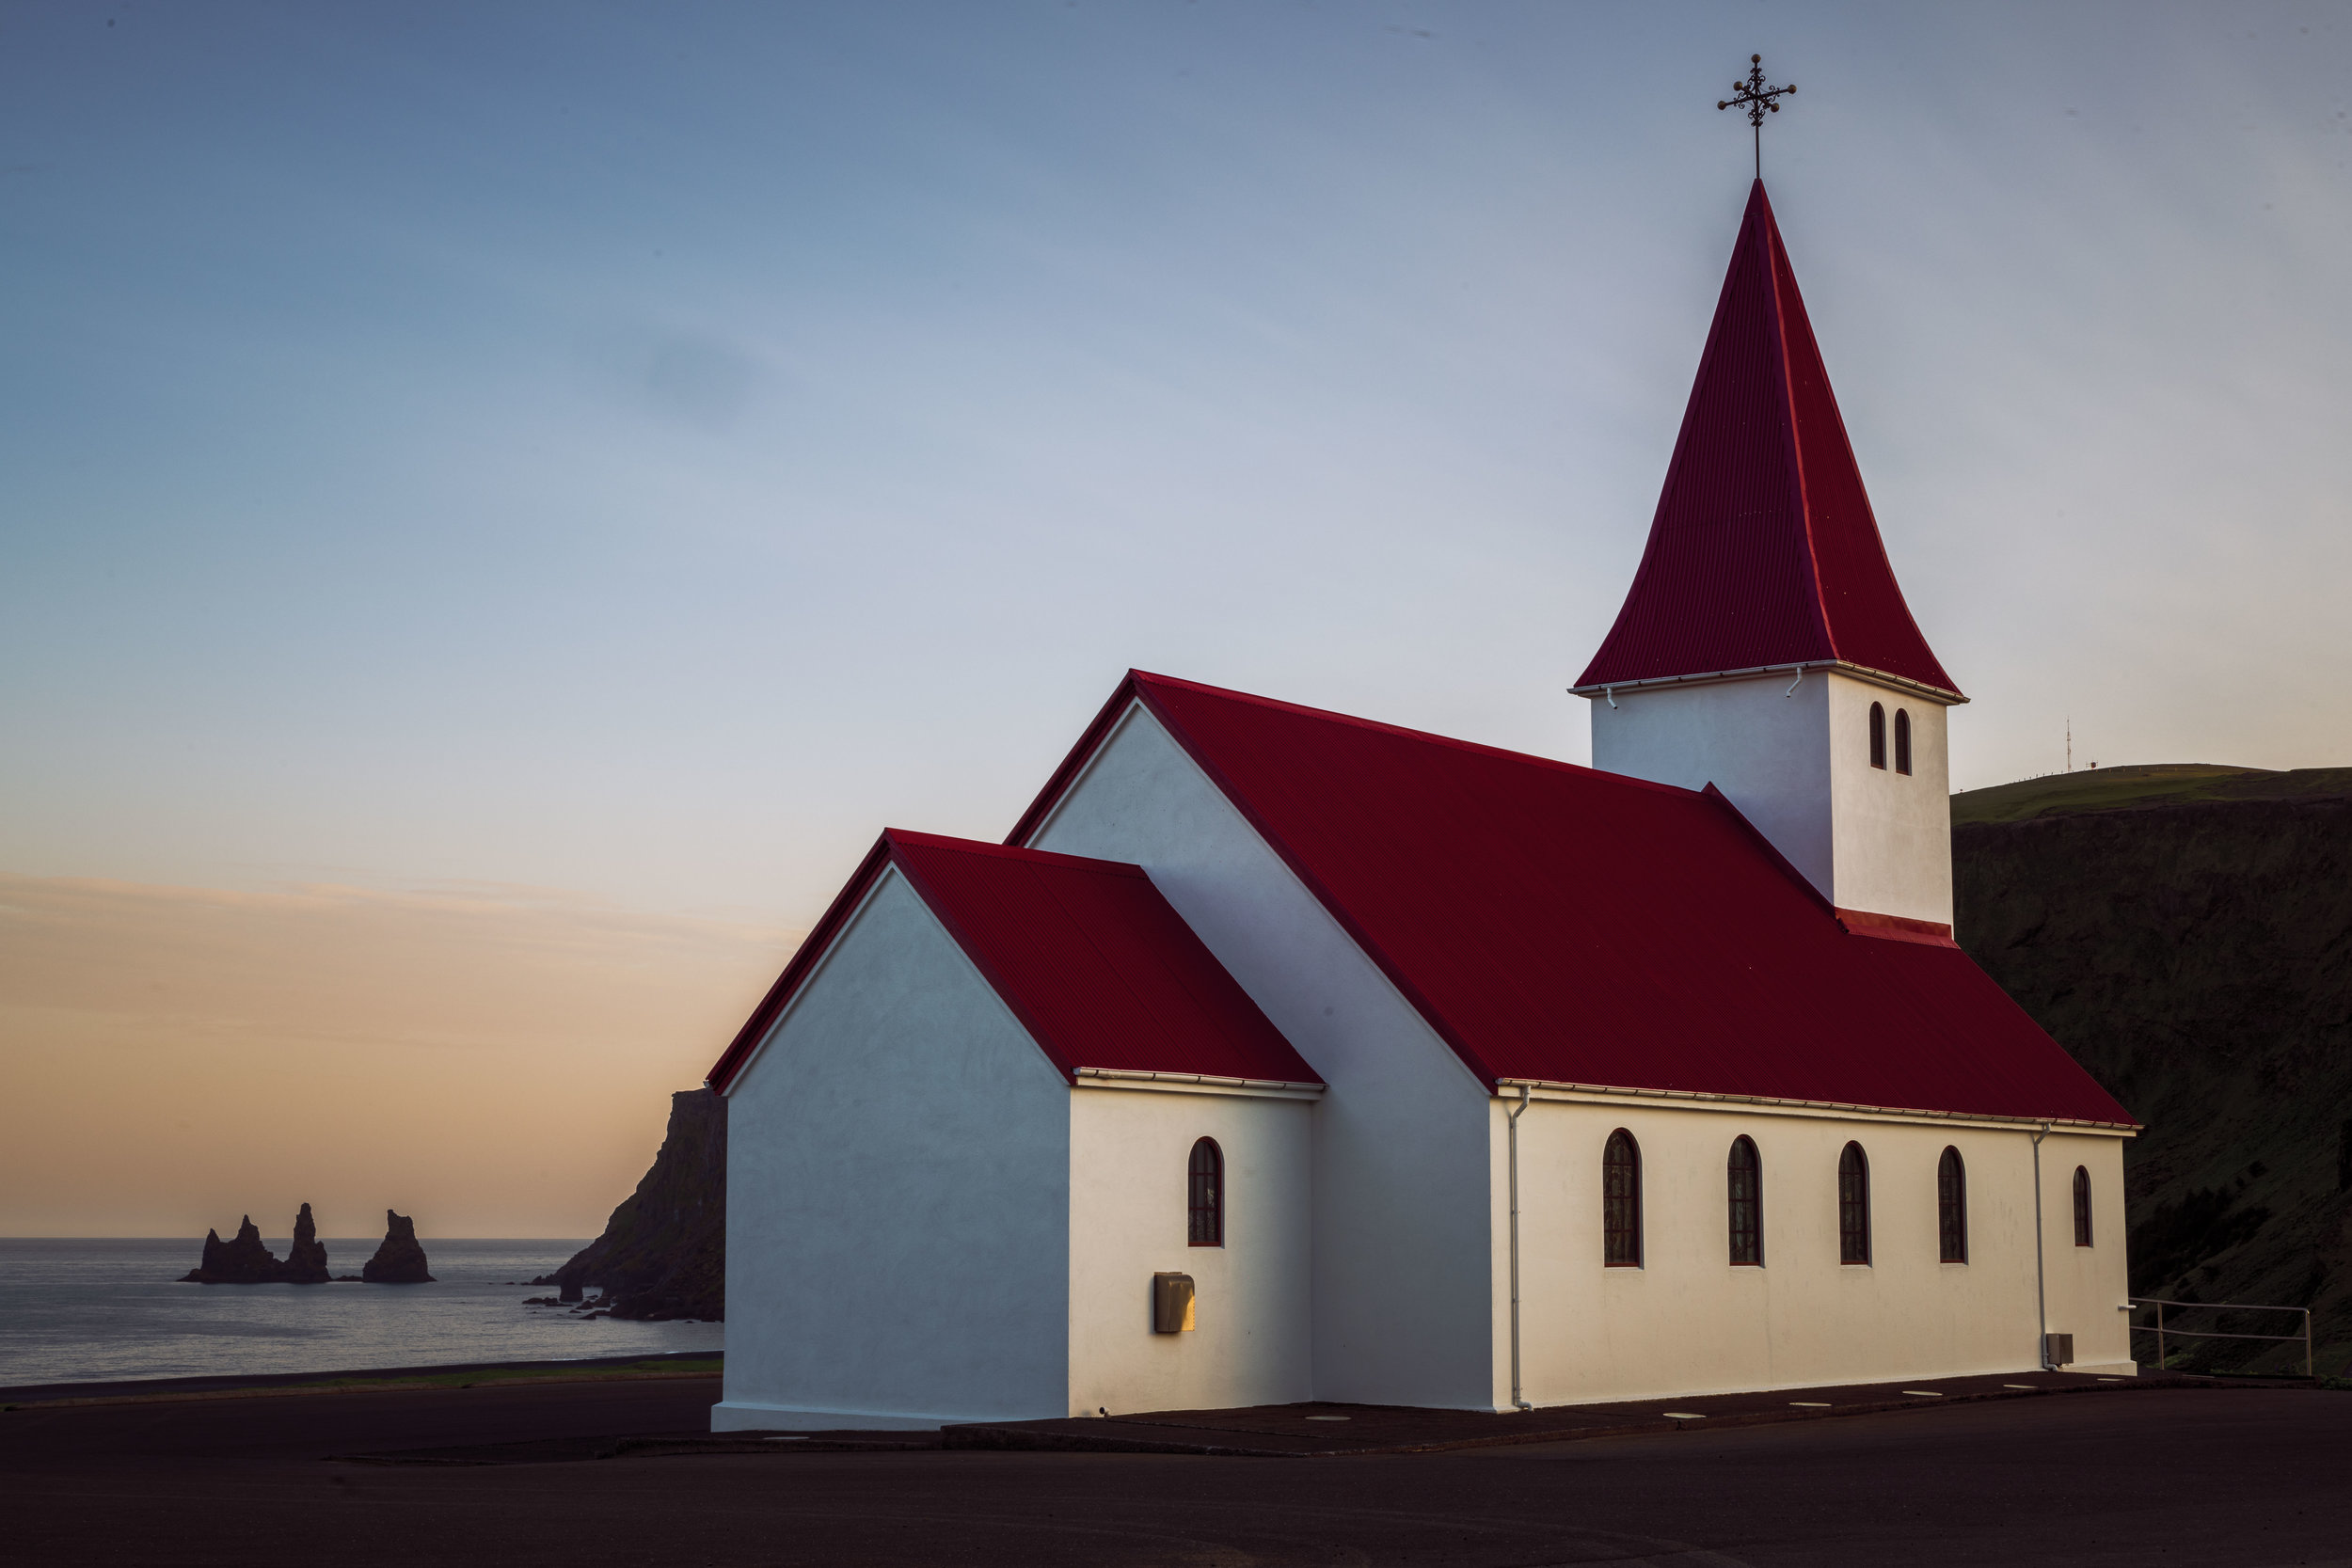 A midnight photo of a church in Vik with sea stacks in the background